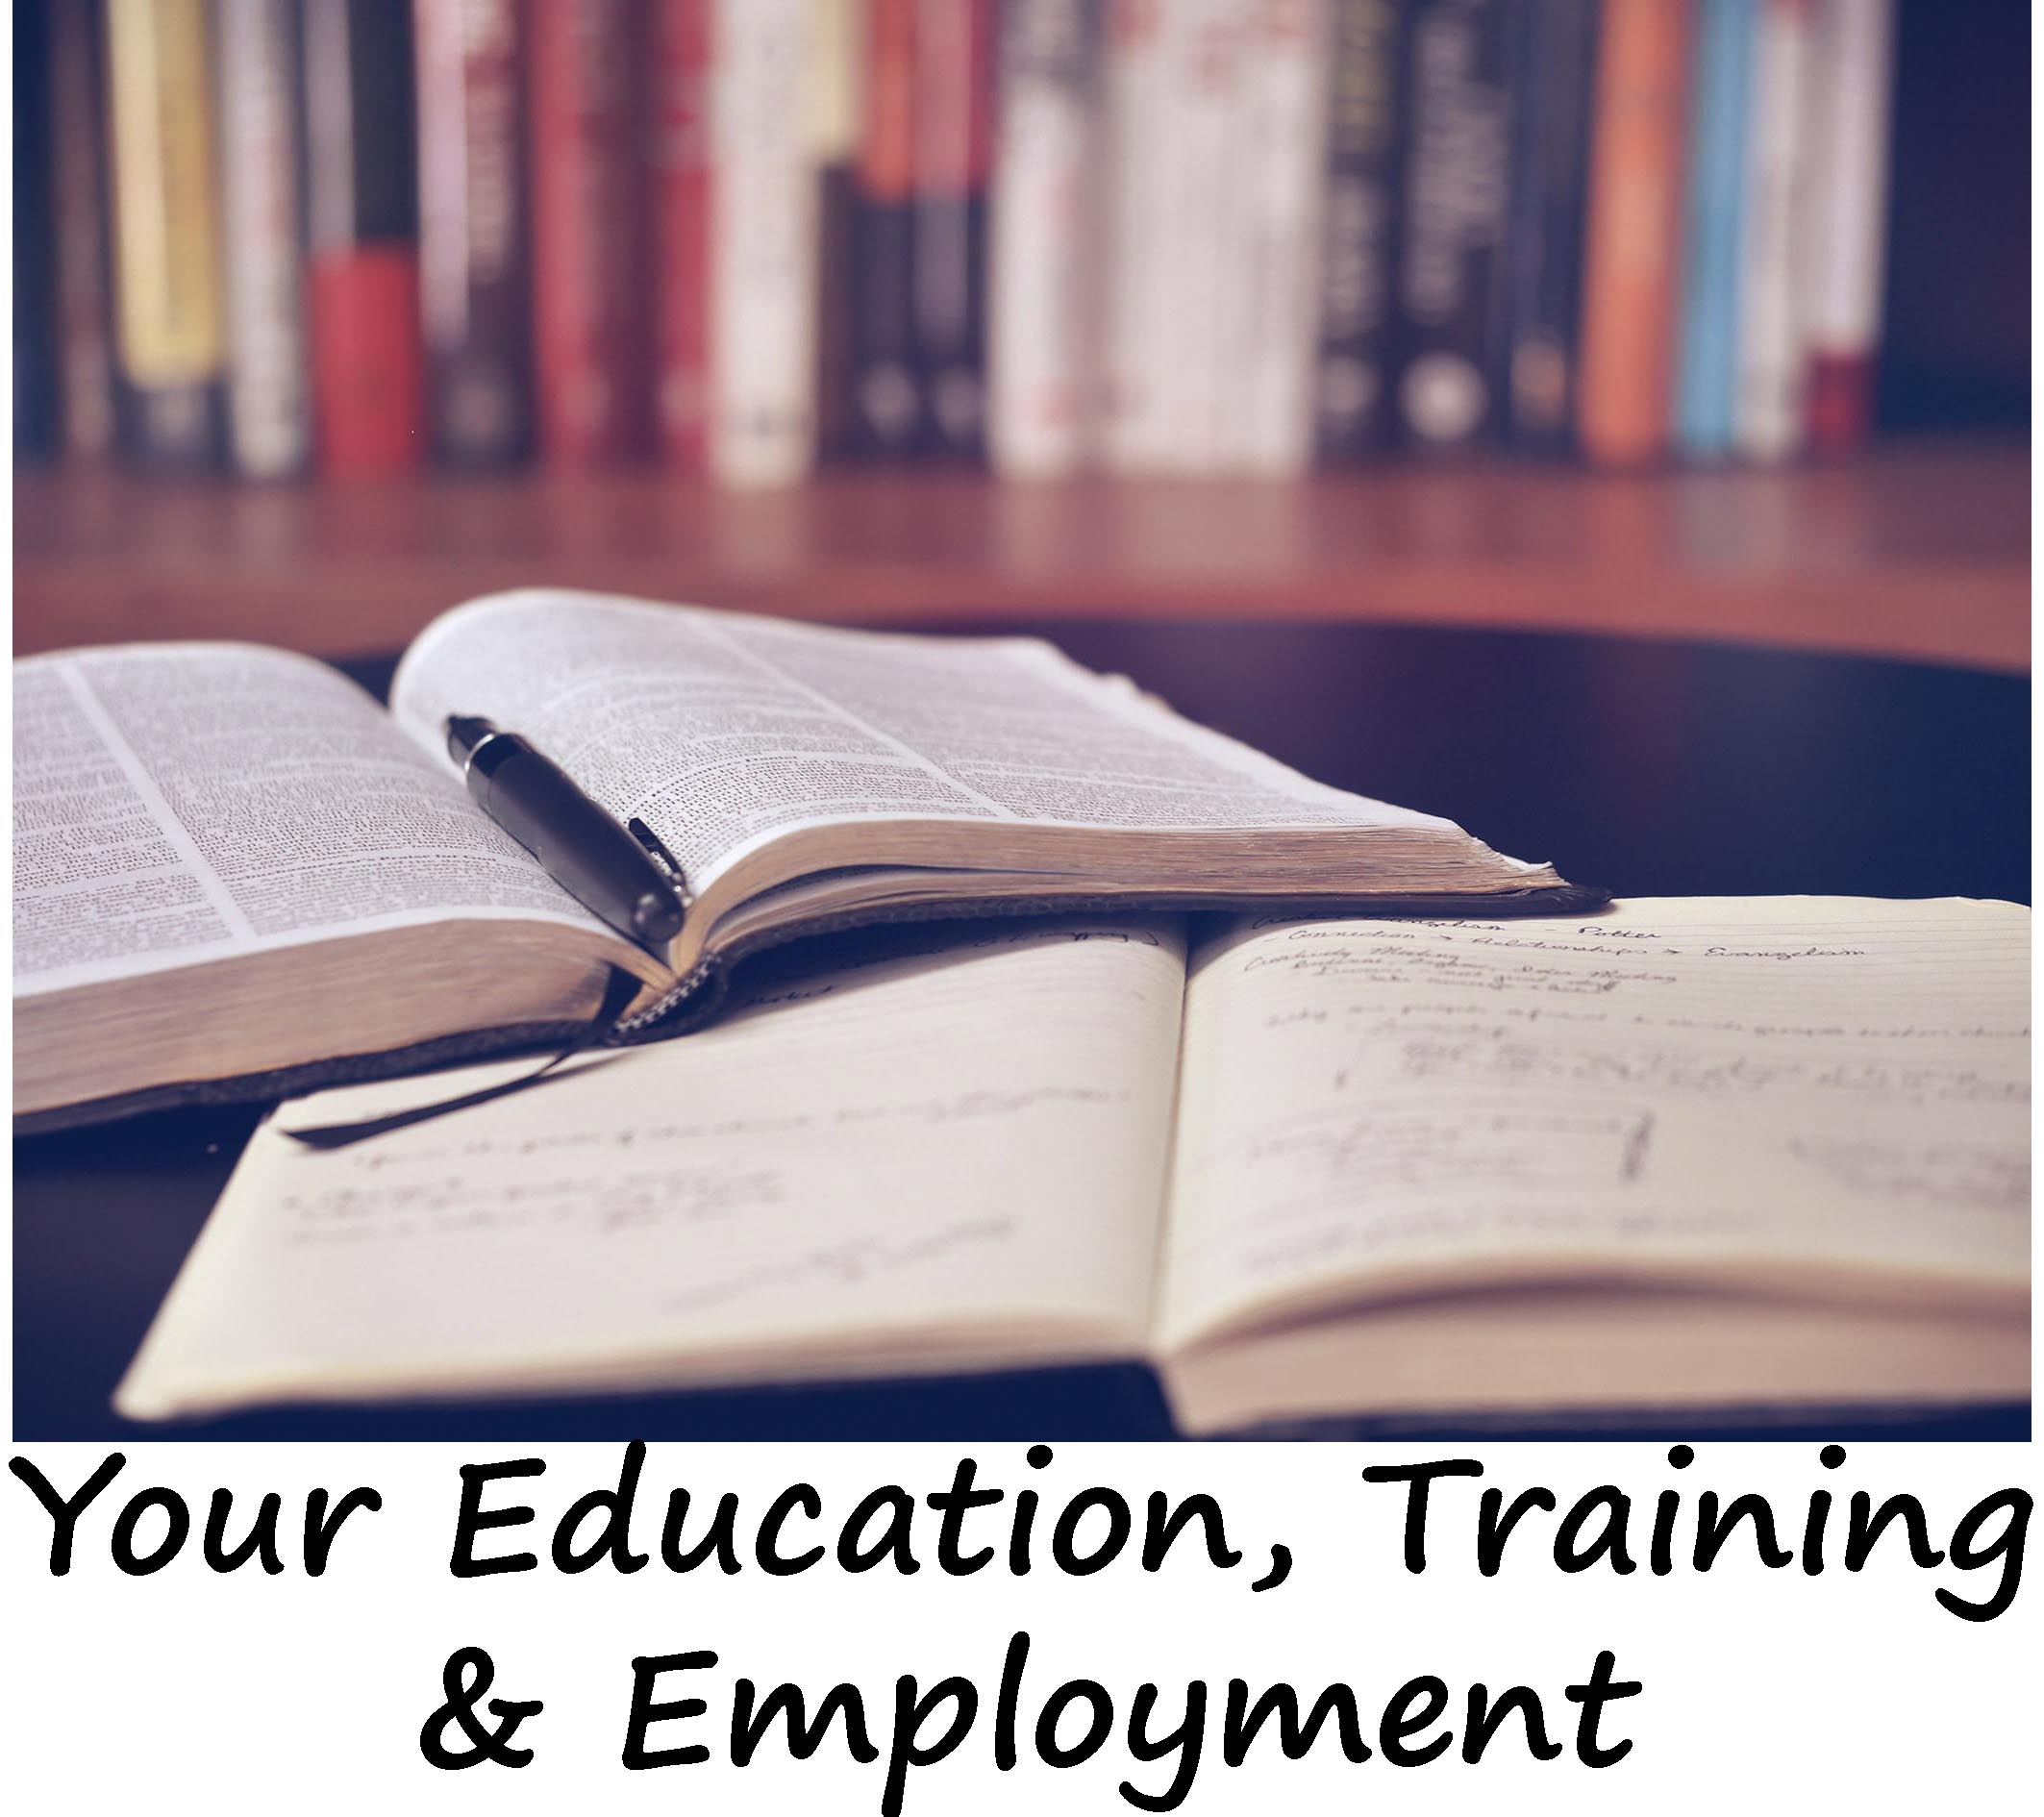 Link to Your Education, Training and Employment